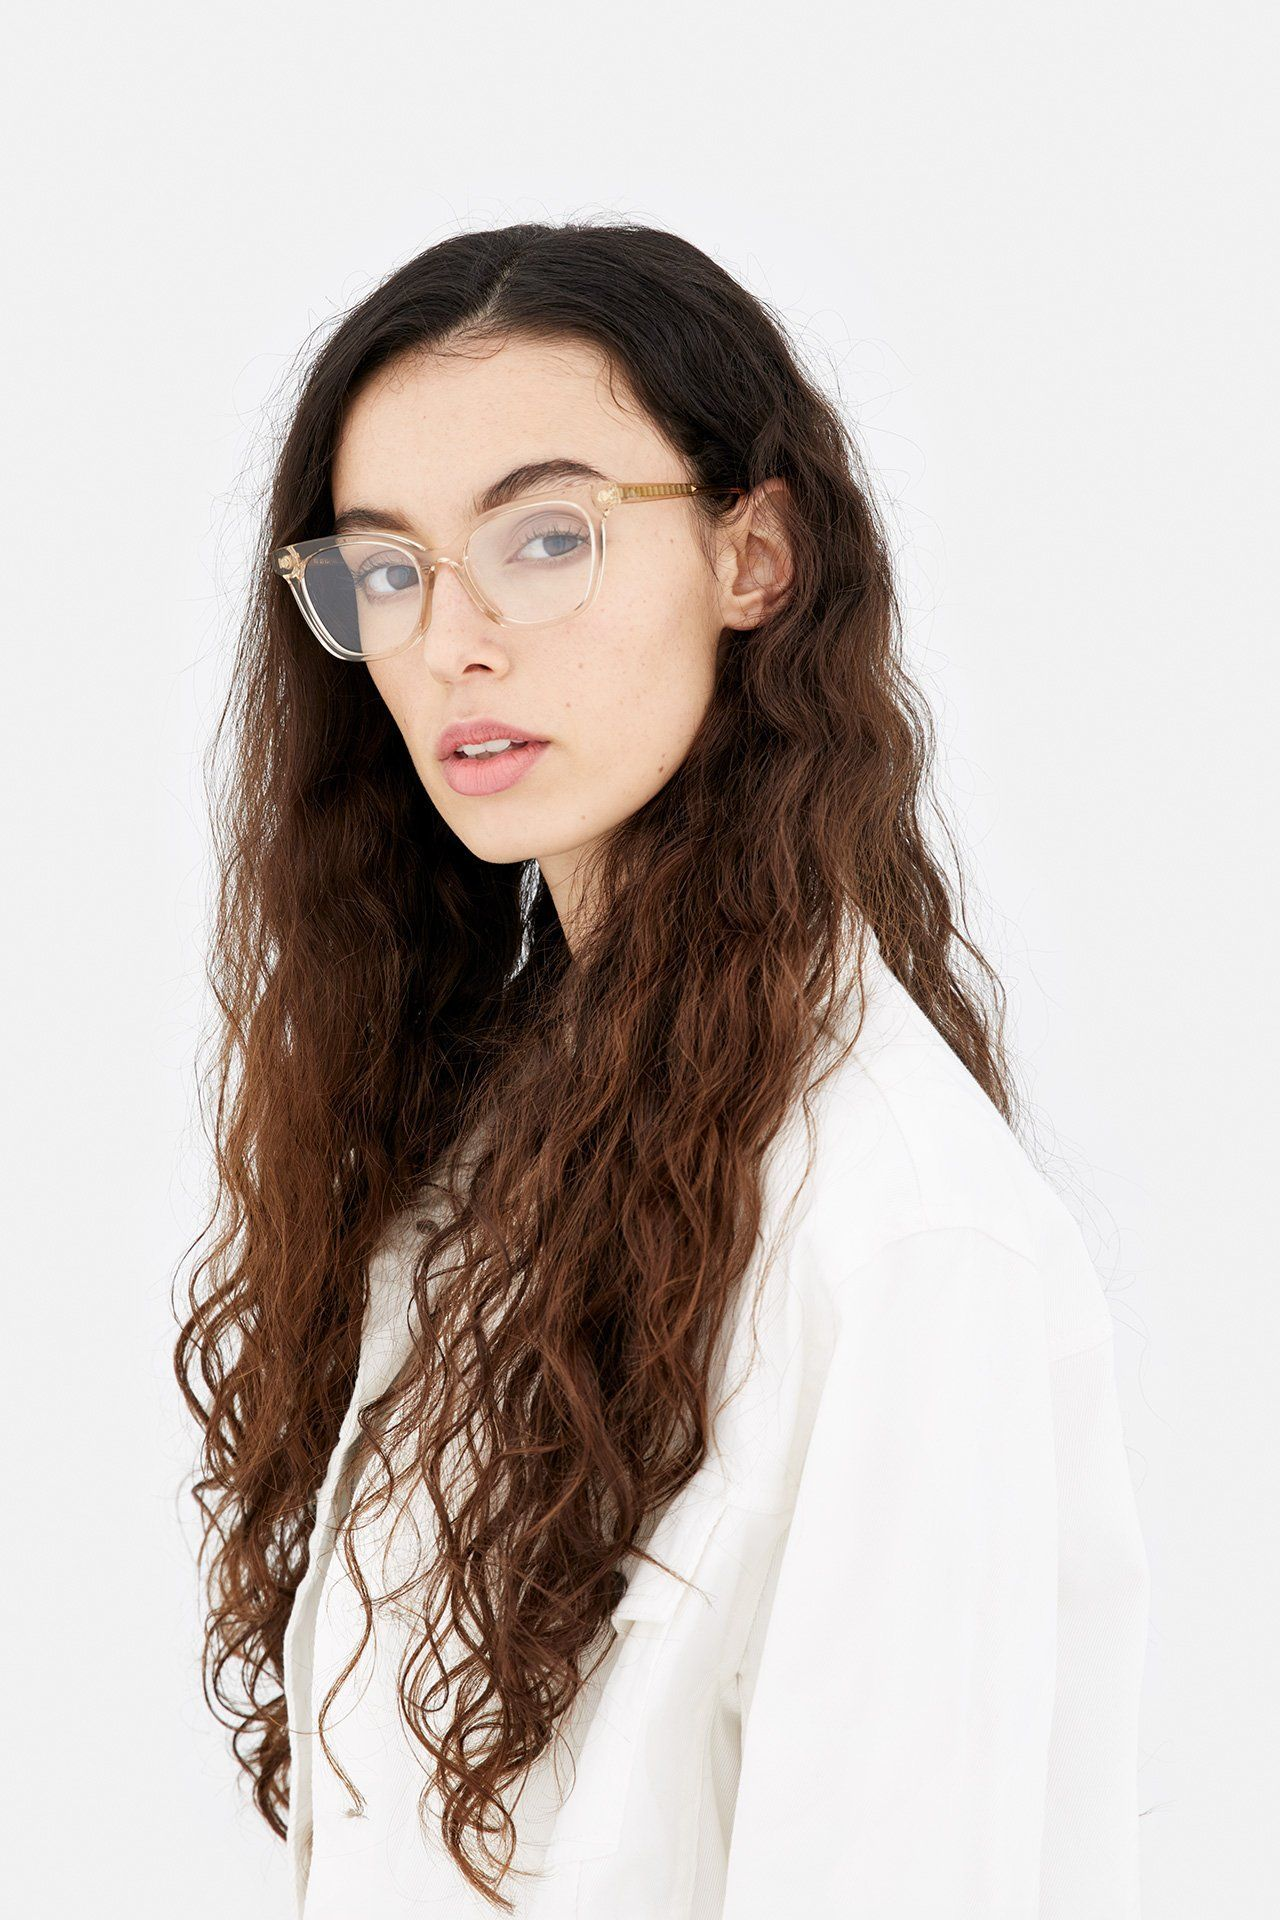 d57e975ed648 The RETRO SUPER FUTURE // NUMERO 54 Eyeglasses features wide lenses with a subtle  cat-eye design for women crafted out of light and durable acetate.